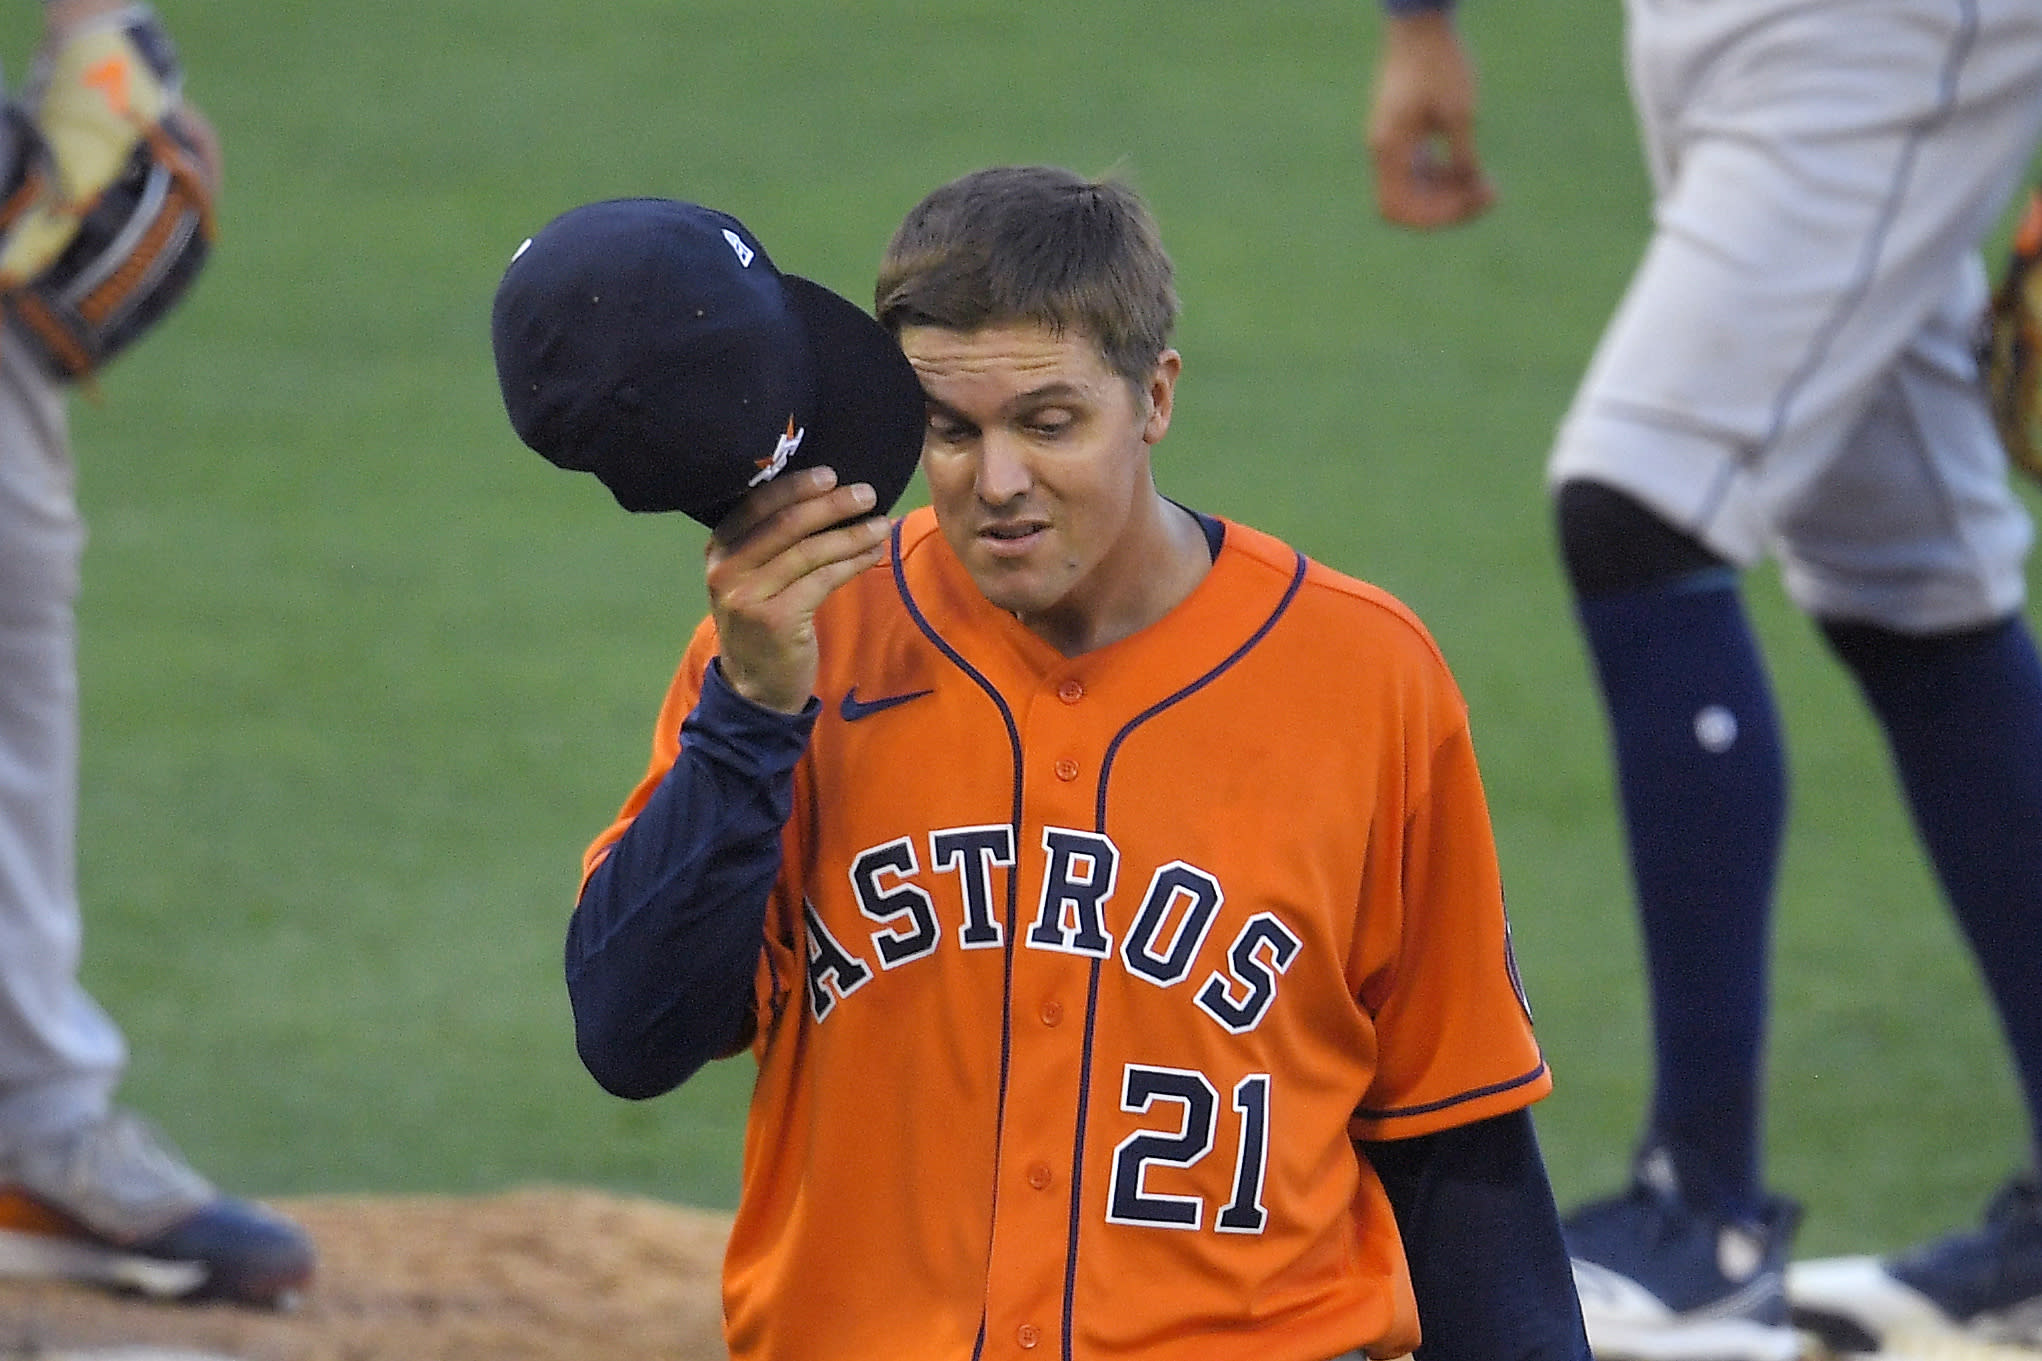 Houston Astros' Zack Greinke rubs his face as he is taken out of a baseball game during the seventh inning against the Los Angeles Angels, Saturday, Aug. 1, 2020, in Anaheim, Calif. (AP Photo/Mark J. Terrill)